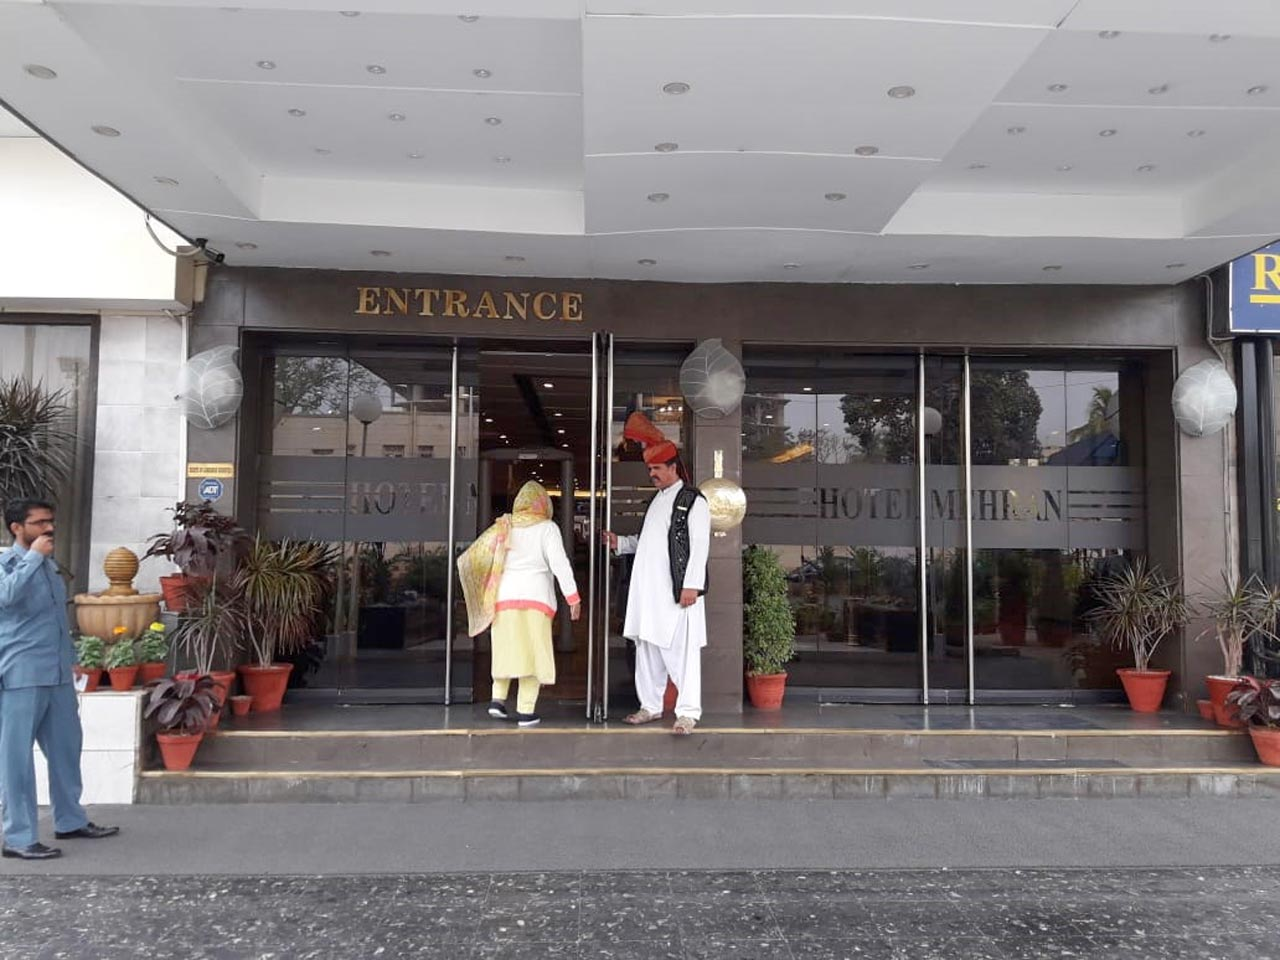 Entrance to Hotel Mehran